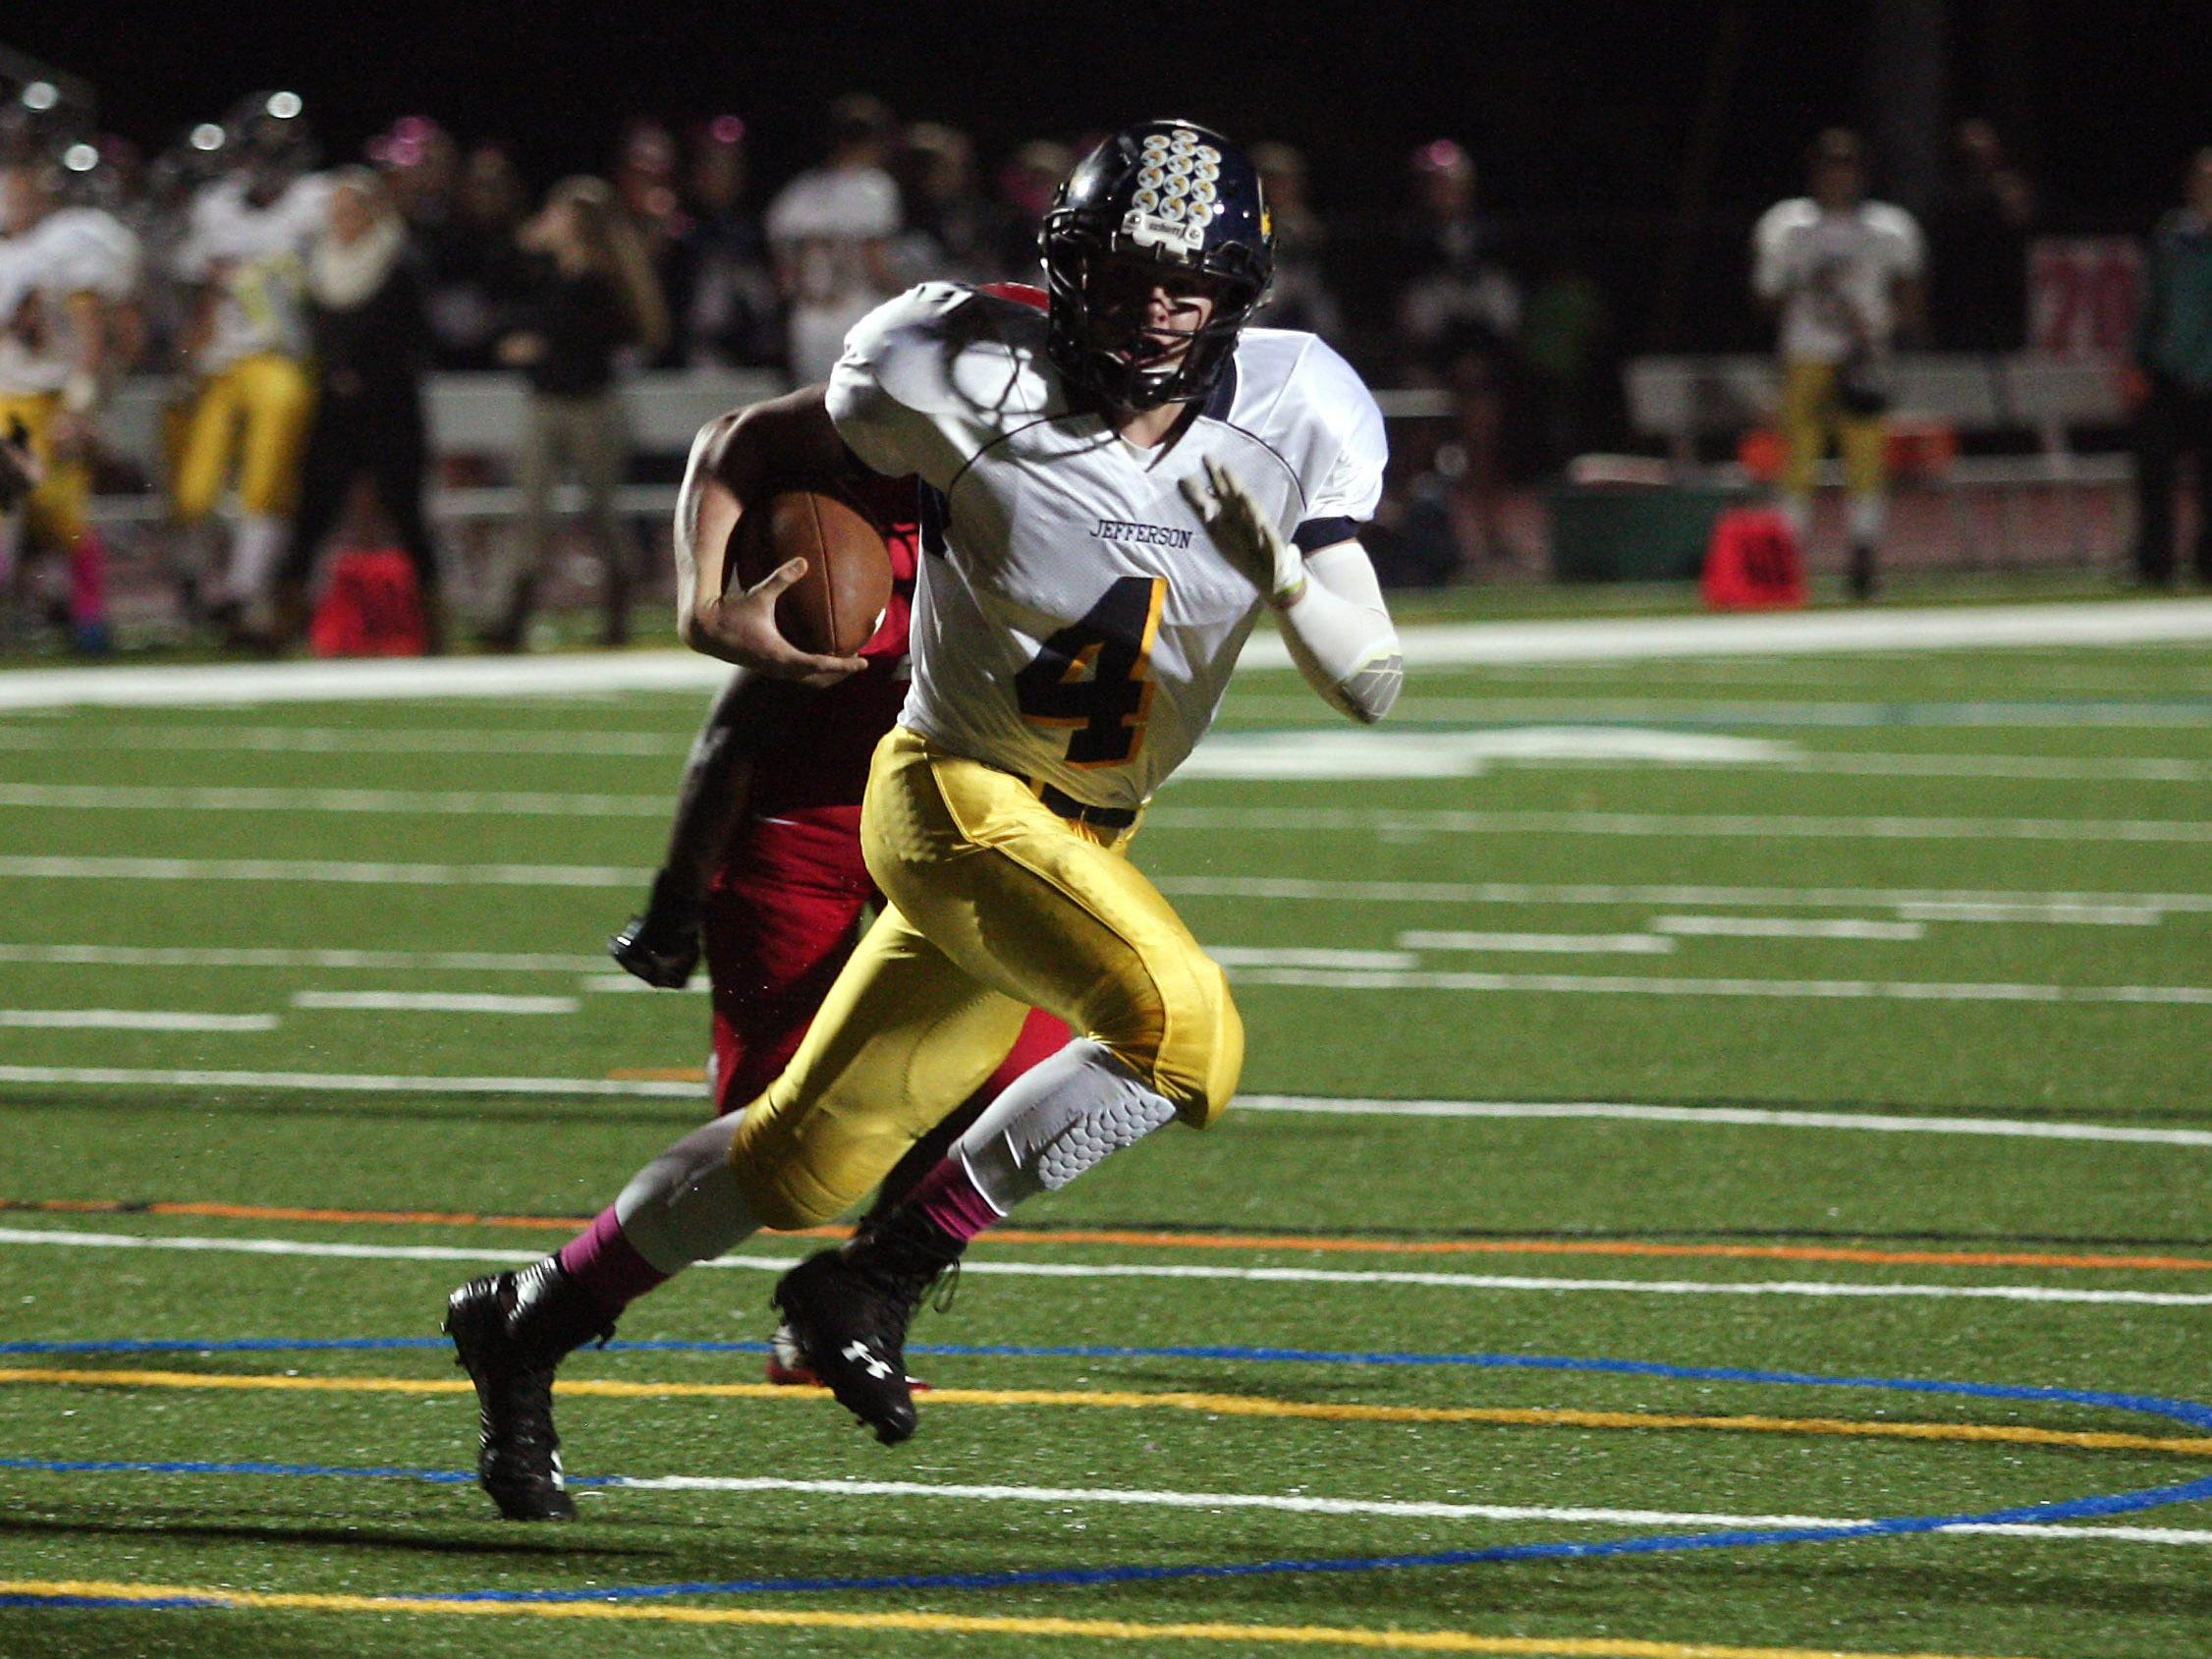 Jefferson quarterback Logan Holleritter rushes on a keeper against Parsippany on Friday night.